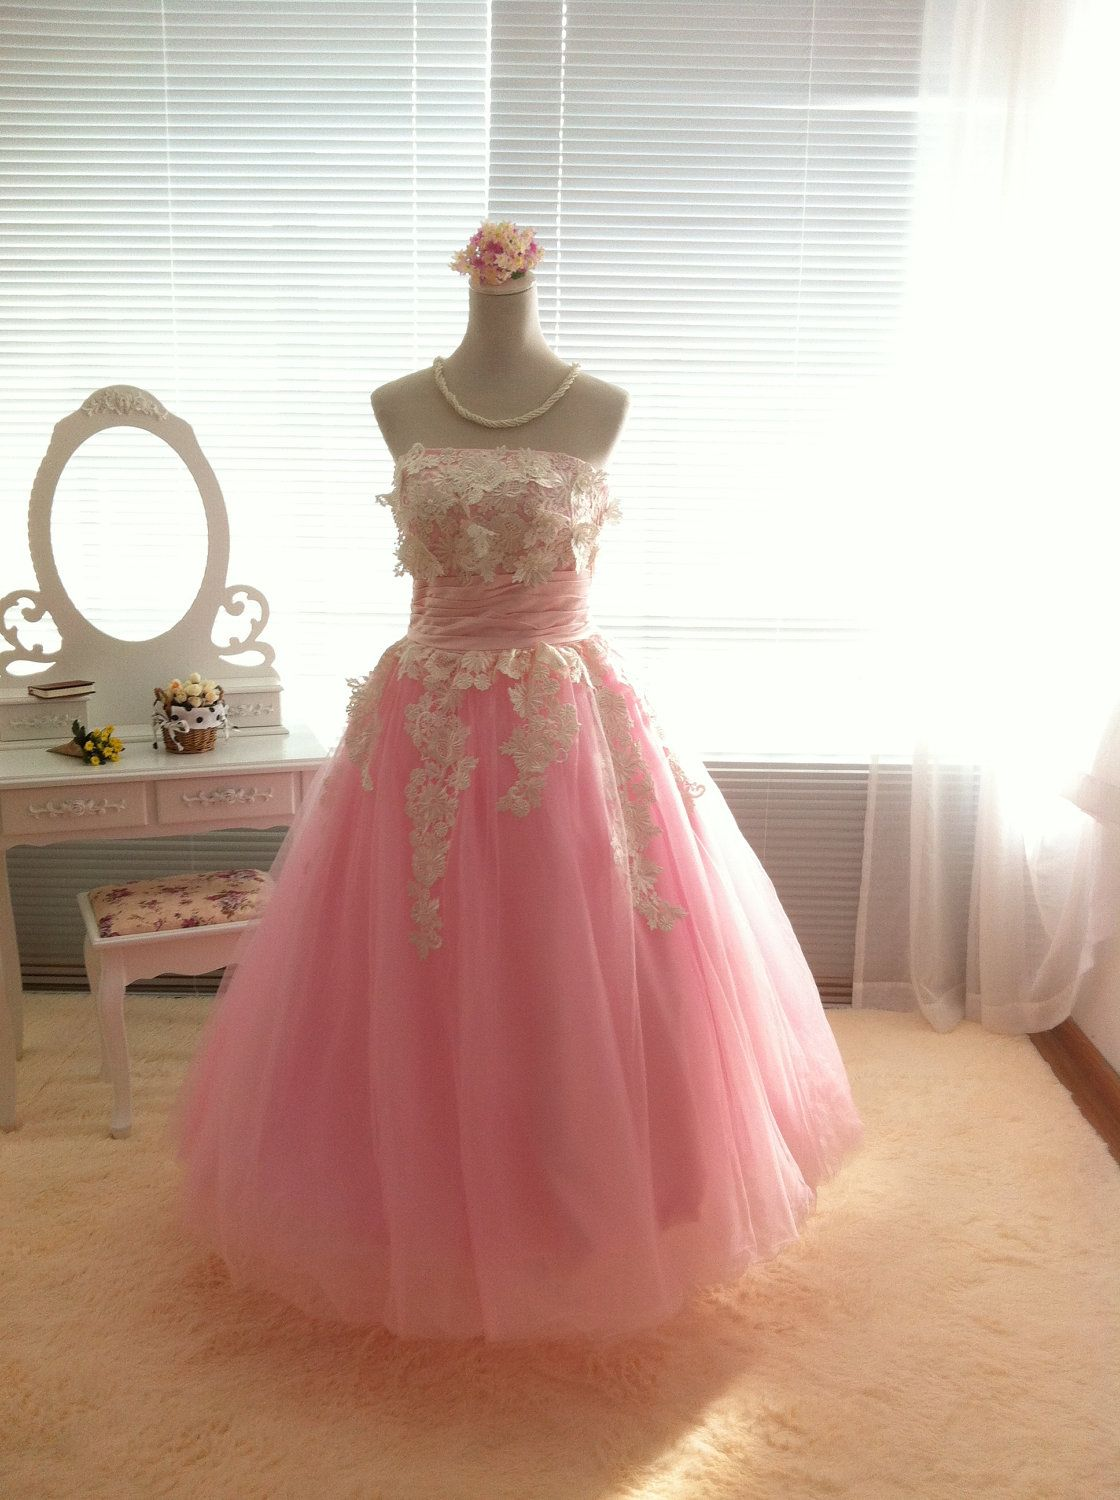 Custom Make Vintage Inspired Tulle Wedding Dress Bridal Gown Pink ...